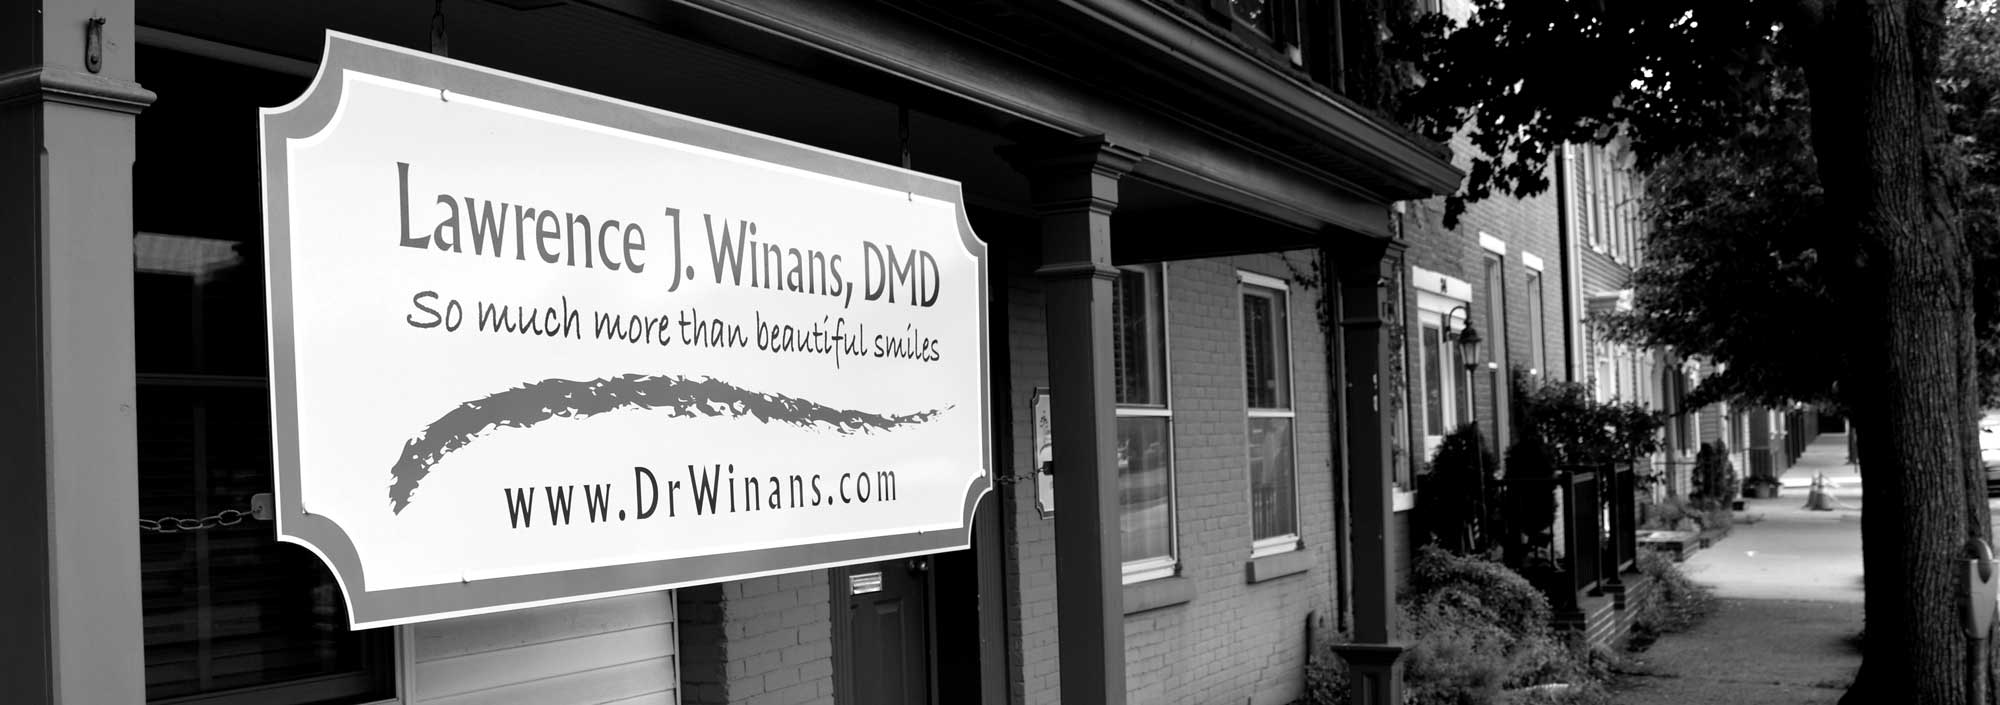 dental office sign winans